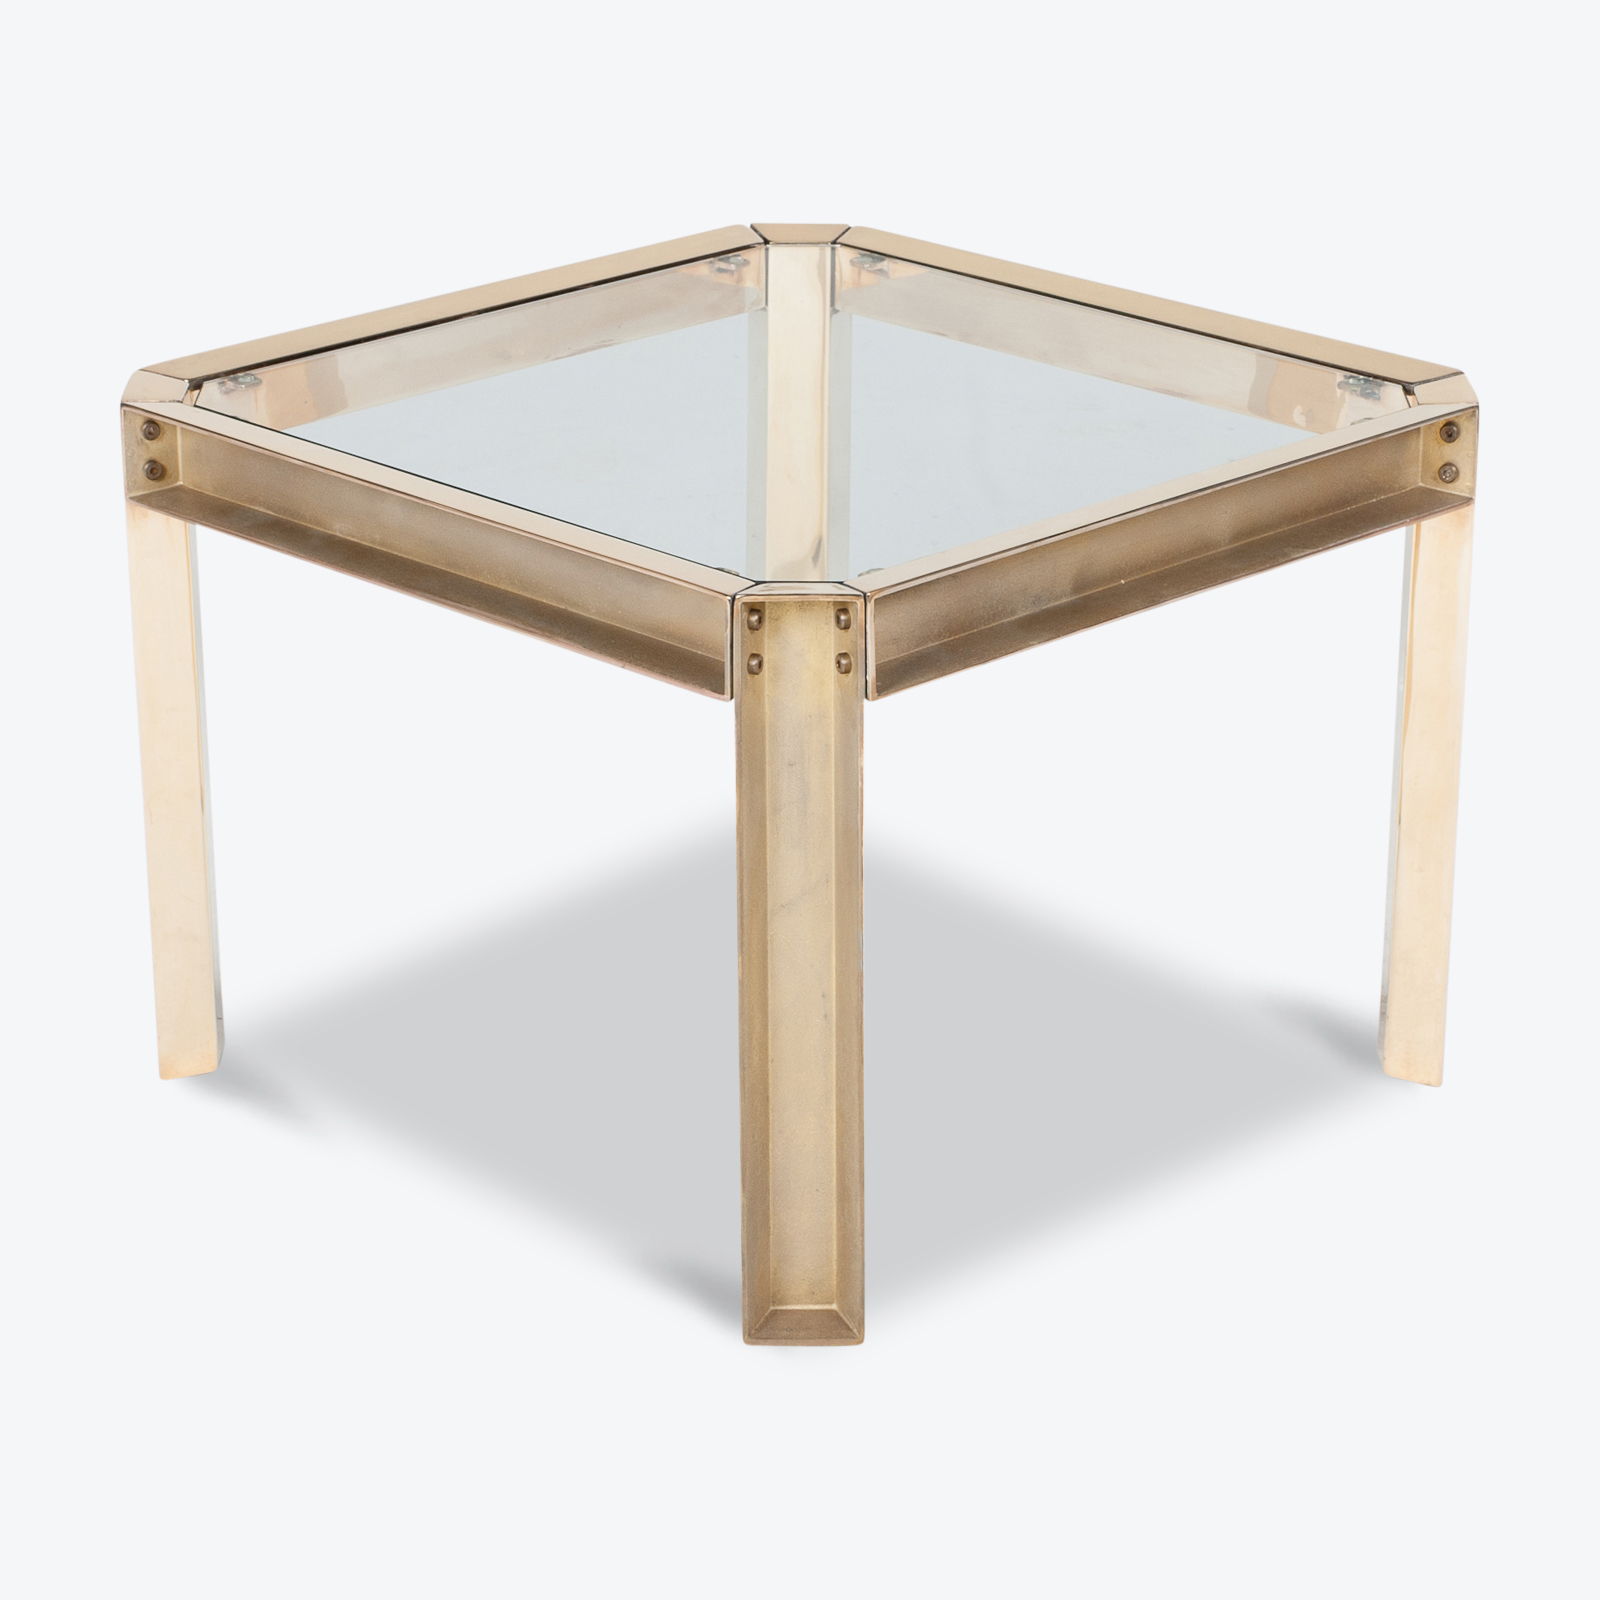 Square Side Table With Clear Glass Top By Peter Ghyczy, 1970s, The Netherlands Hero